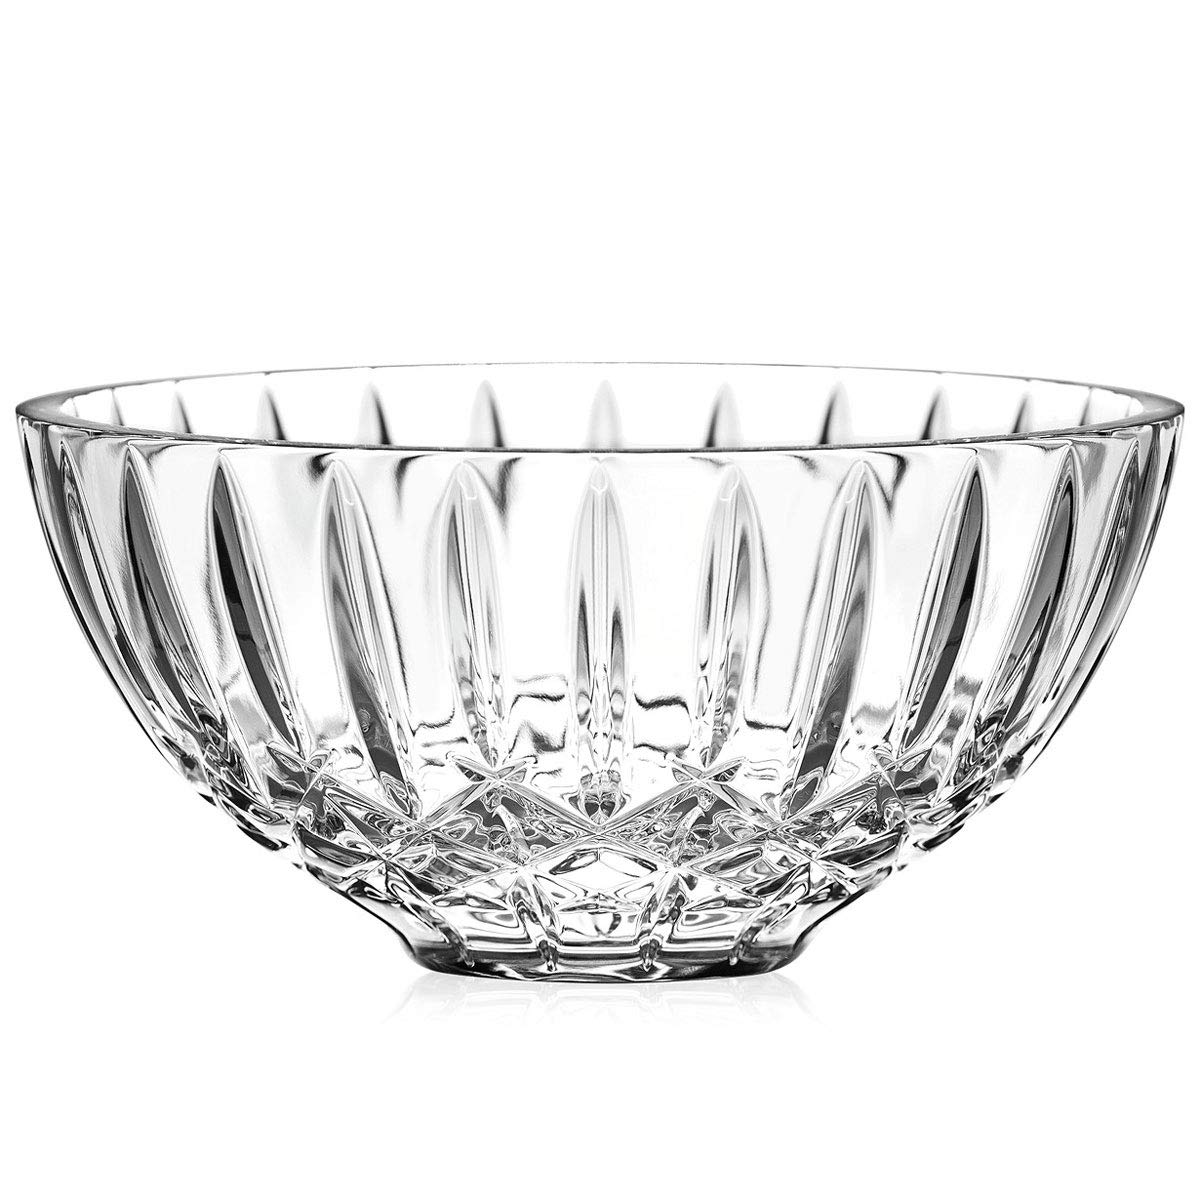 Waterford Heritage Crystal Serving Centerpiece Bowl, 8 Inches